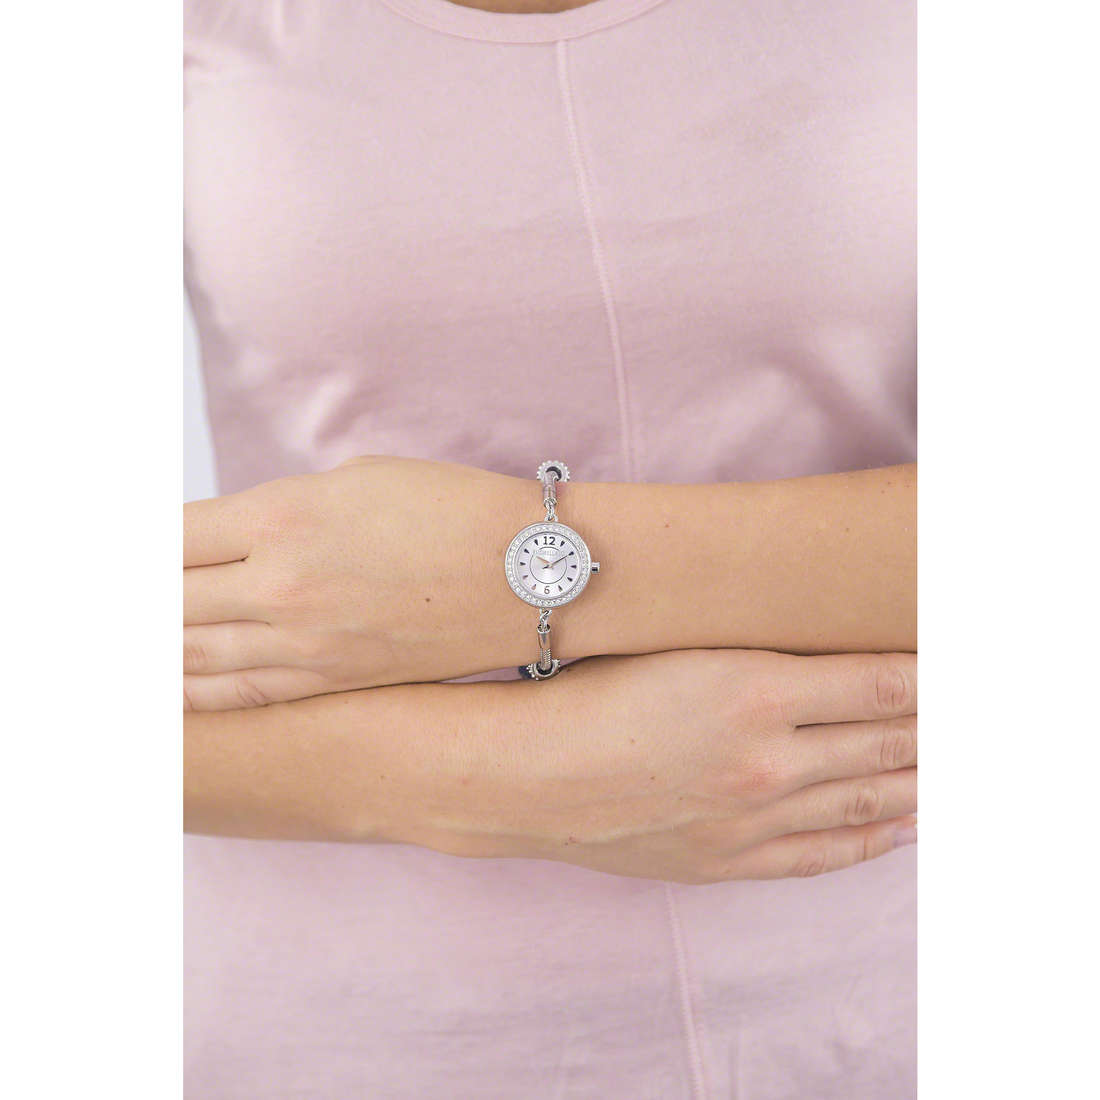 Morellato seul le temps Drops Orologi femme R0153122542 photo wearing